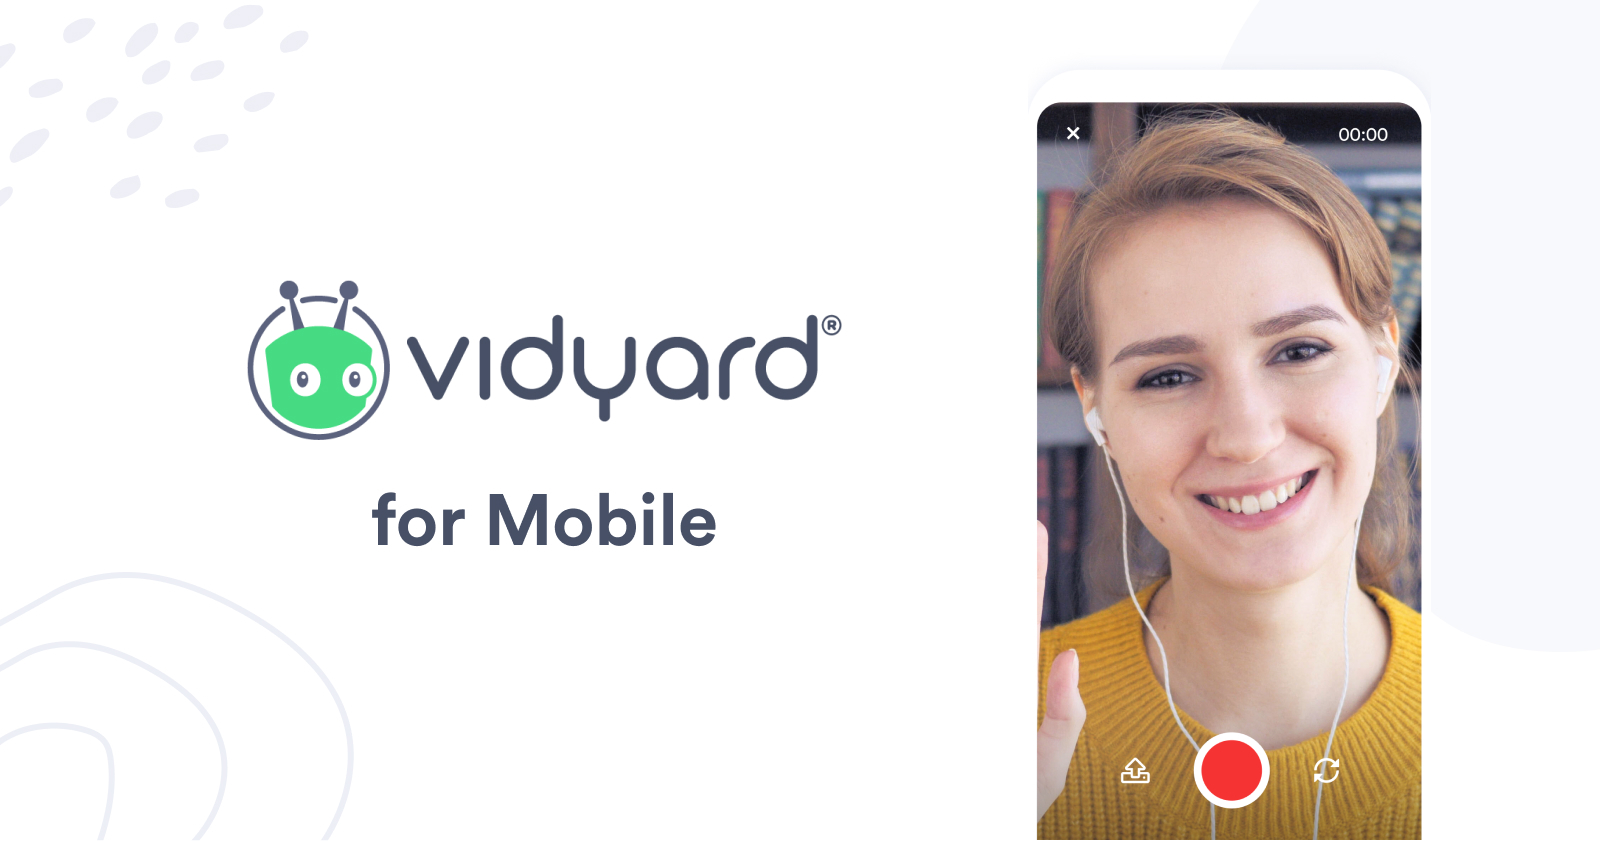 As Demand for Video Surges in Business, Vidyard Continues Expansion of Mobile Video Tools to Complement Platform, Releases Android Version